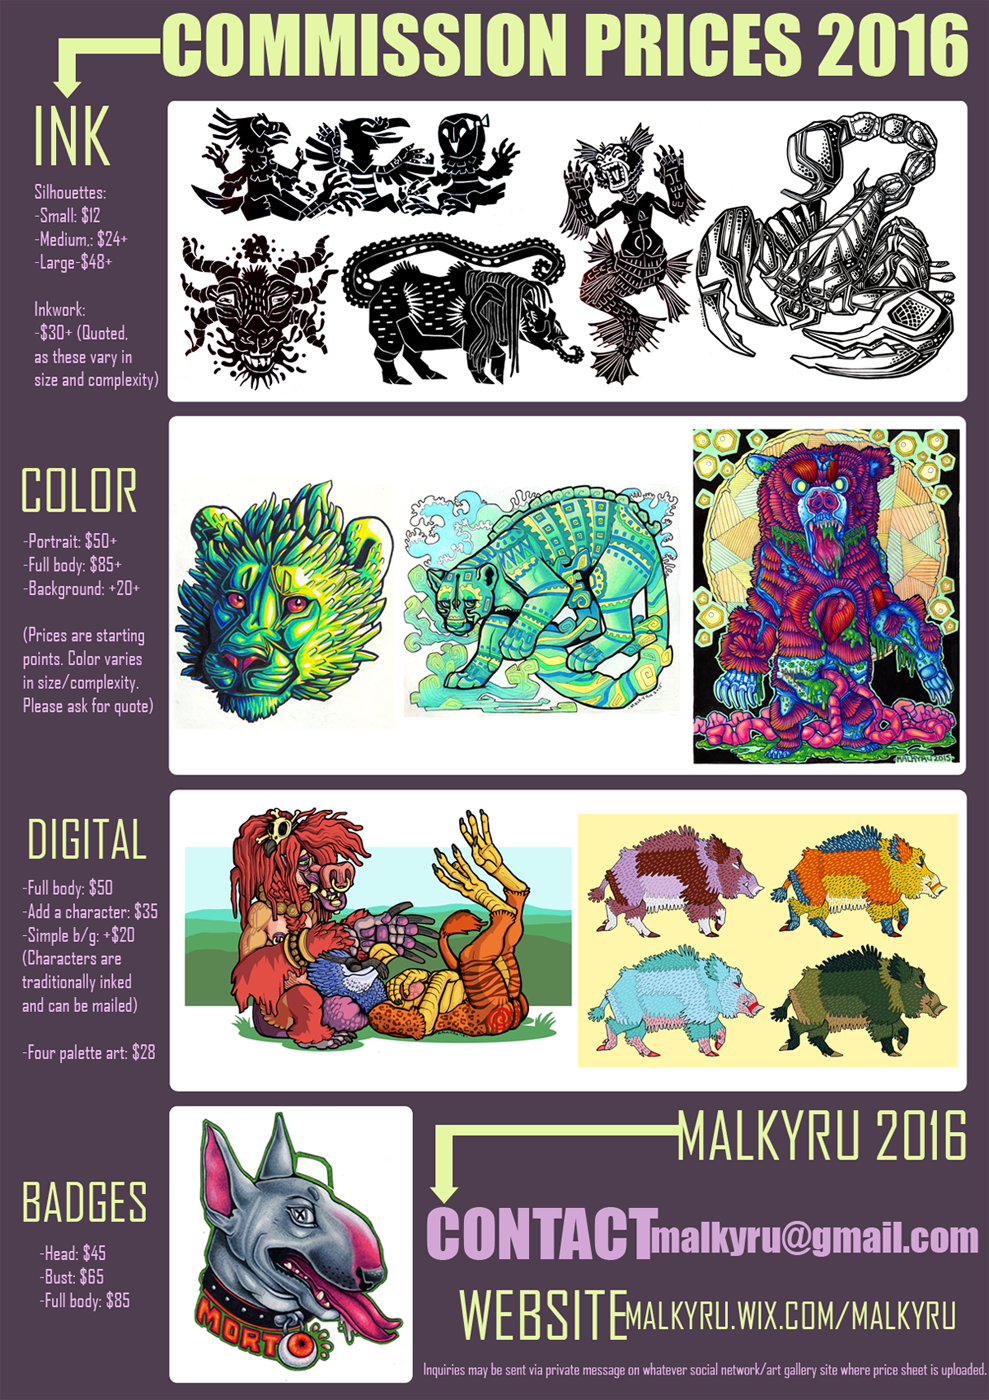 Most recent image: Commission Prices 2016